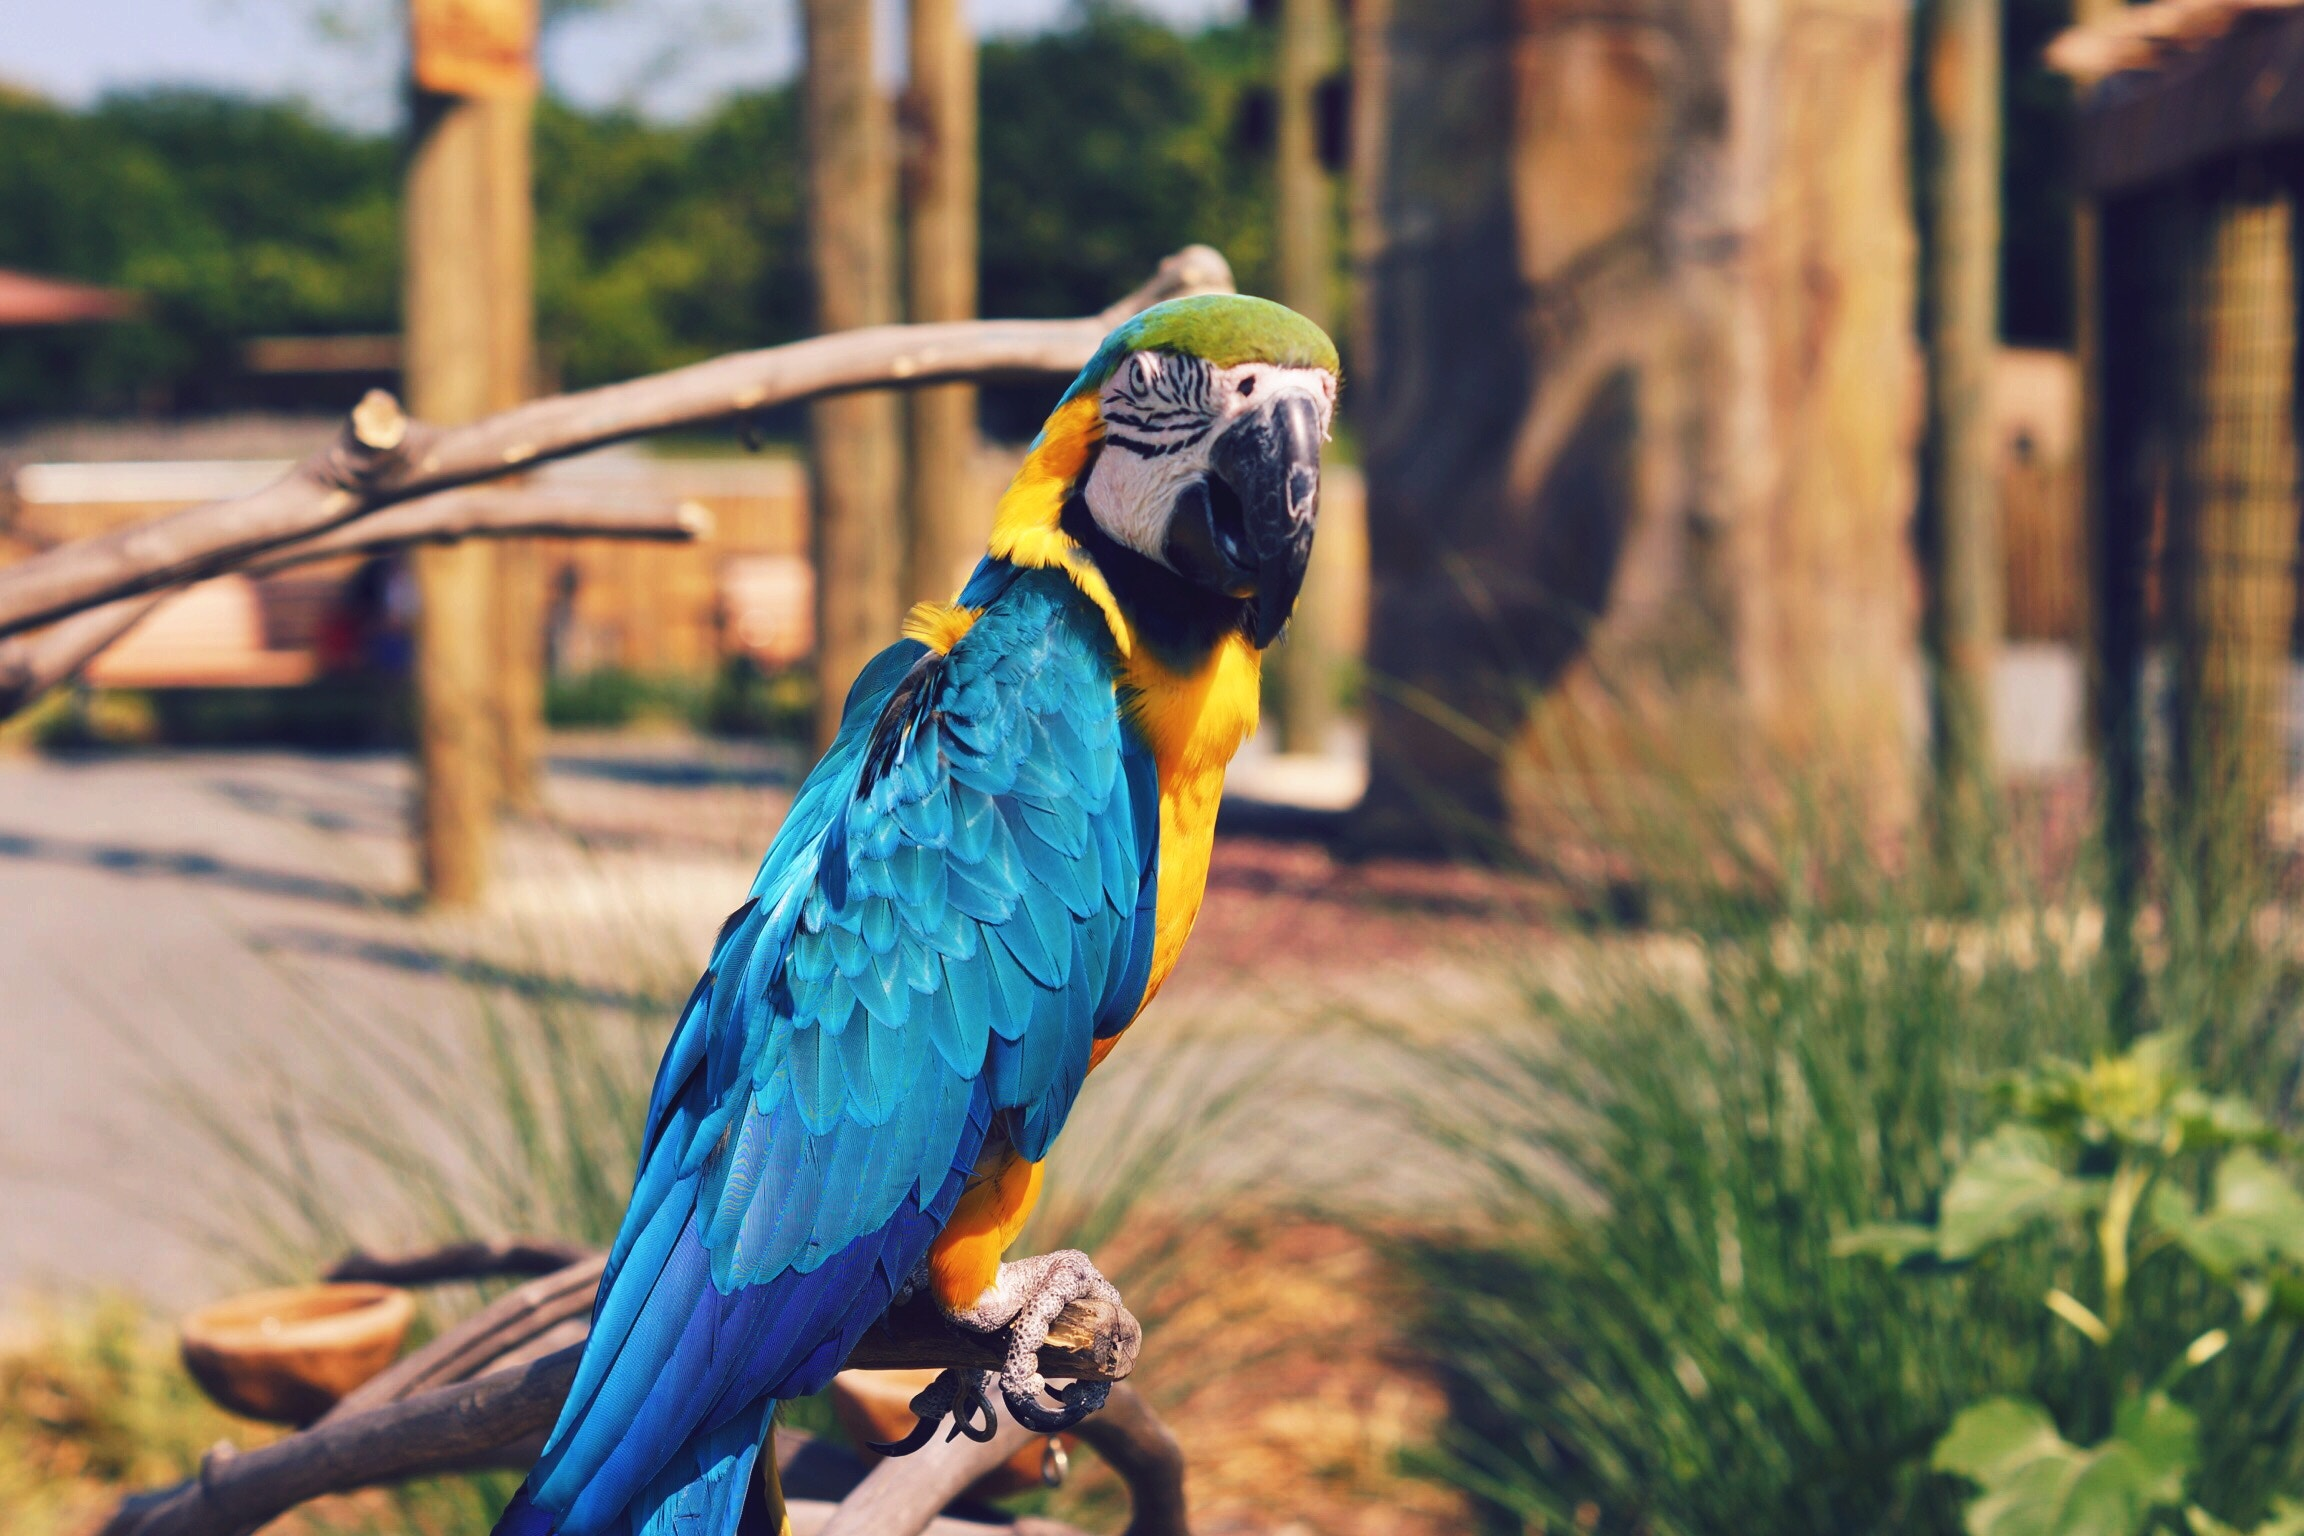 154309 download wallpaper Animals, Parrots, Macaw, Bird, Color screensavers and pictures for free